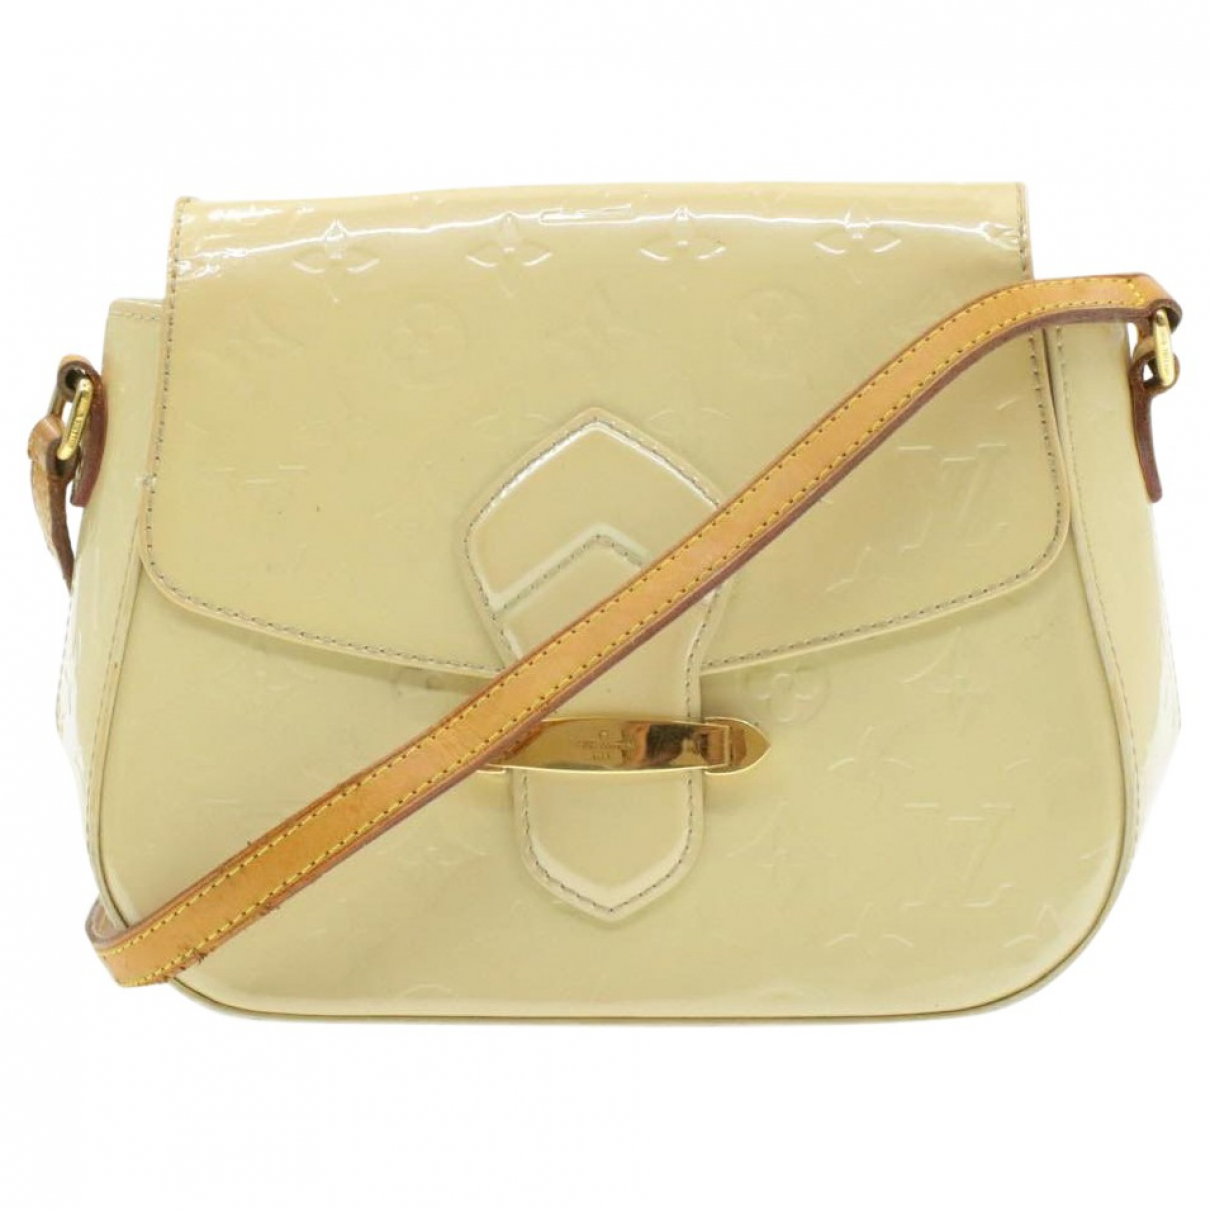 Louis Vuitton Bellflower Beige Cloth handbag for Women \N